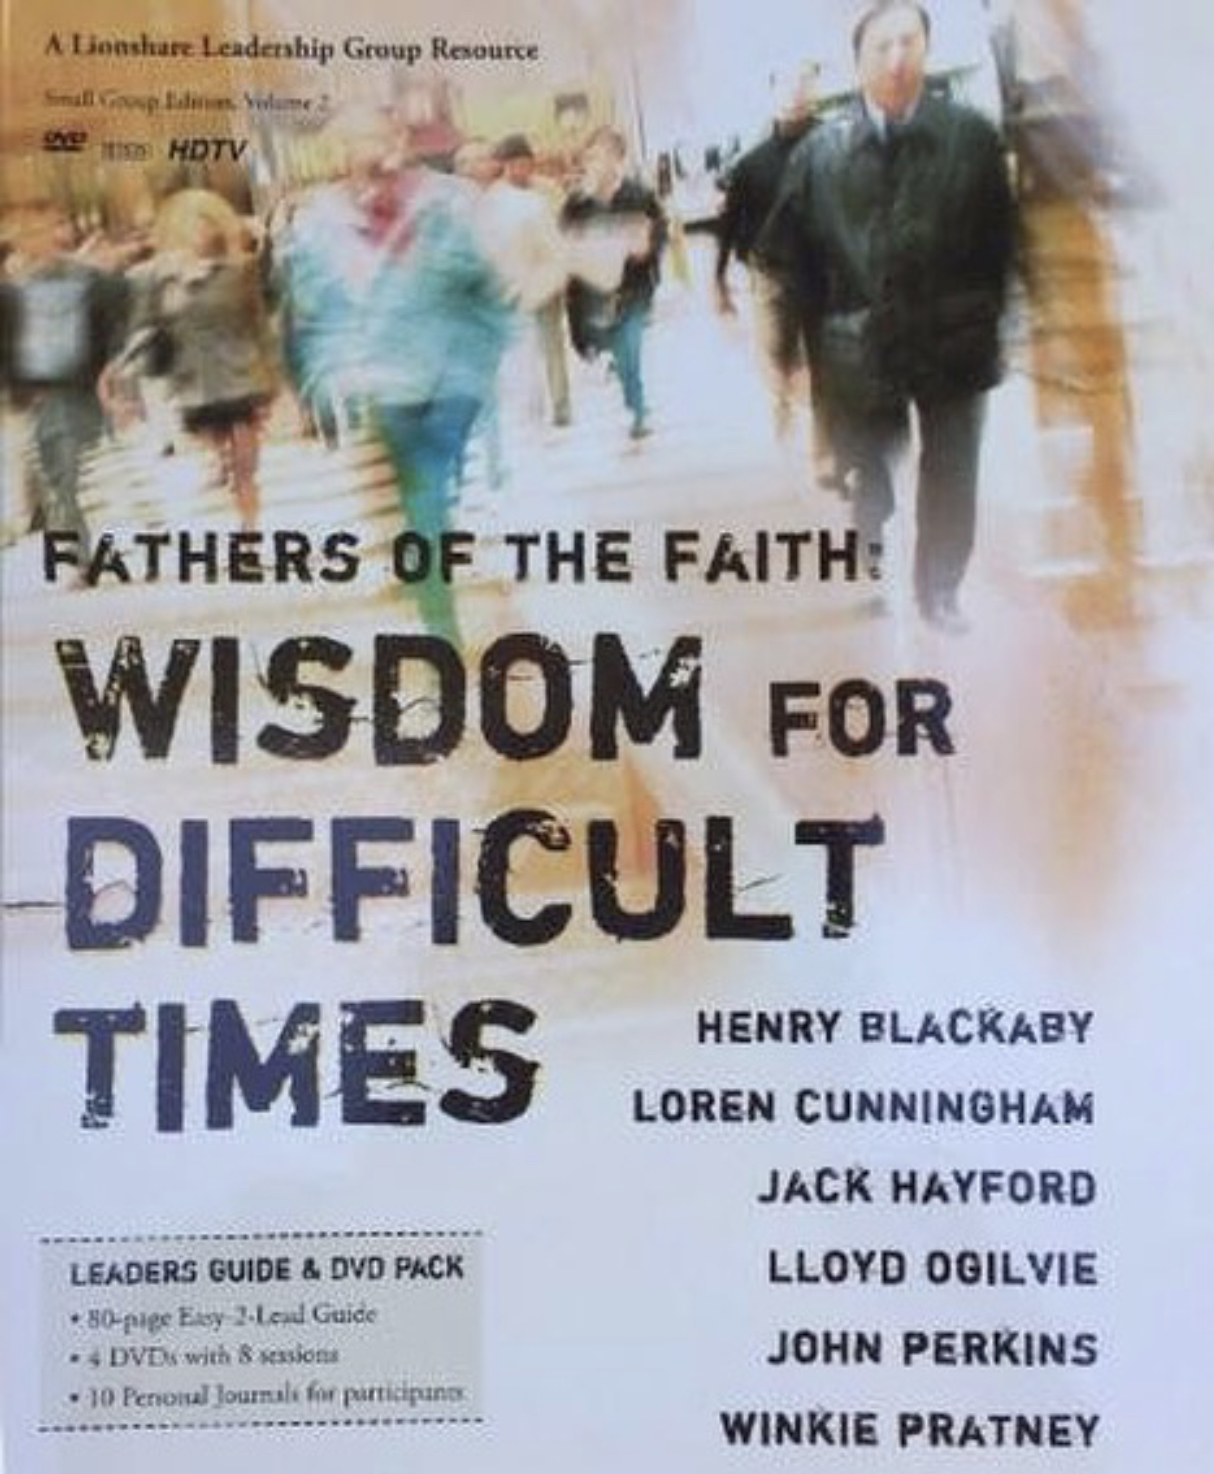 - A GREAT GIFT FOR GRADS AND DADS! Give the gift of wisdom from fathers of the faith.  The eight DVD series is full of a lifetime of learning from spiritual giants such as Loren Cunningham (YWAM), Jack Hayford (Pentecostal minister), Lloyd Ogilvie (Presbyterian minister & U.S. Senate Chaplain), John Perkins (Civil Rights Leader), Winkie Pratney (Evangelist) and Henry Blackaby (Baptist minister).  You pay the sale price of $8.99 and we will waive the shipping fee. Clickhereto purchase.